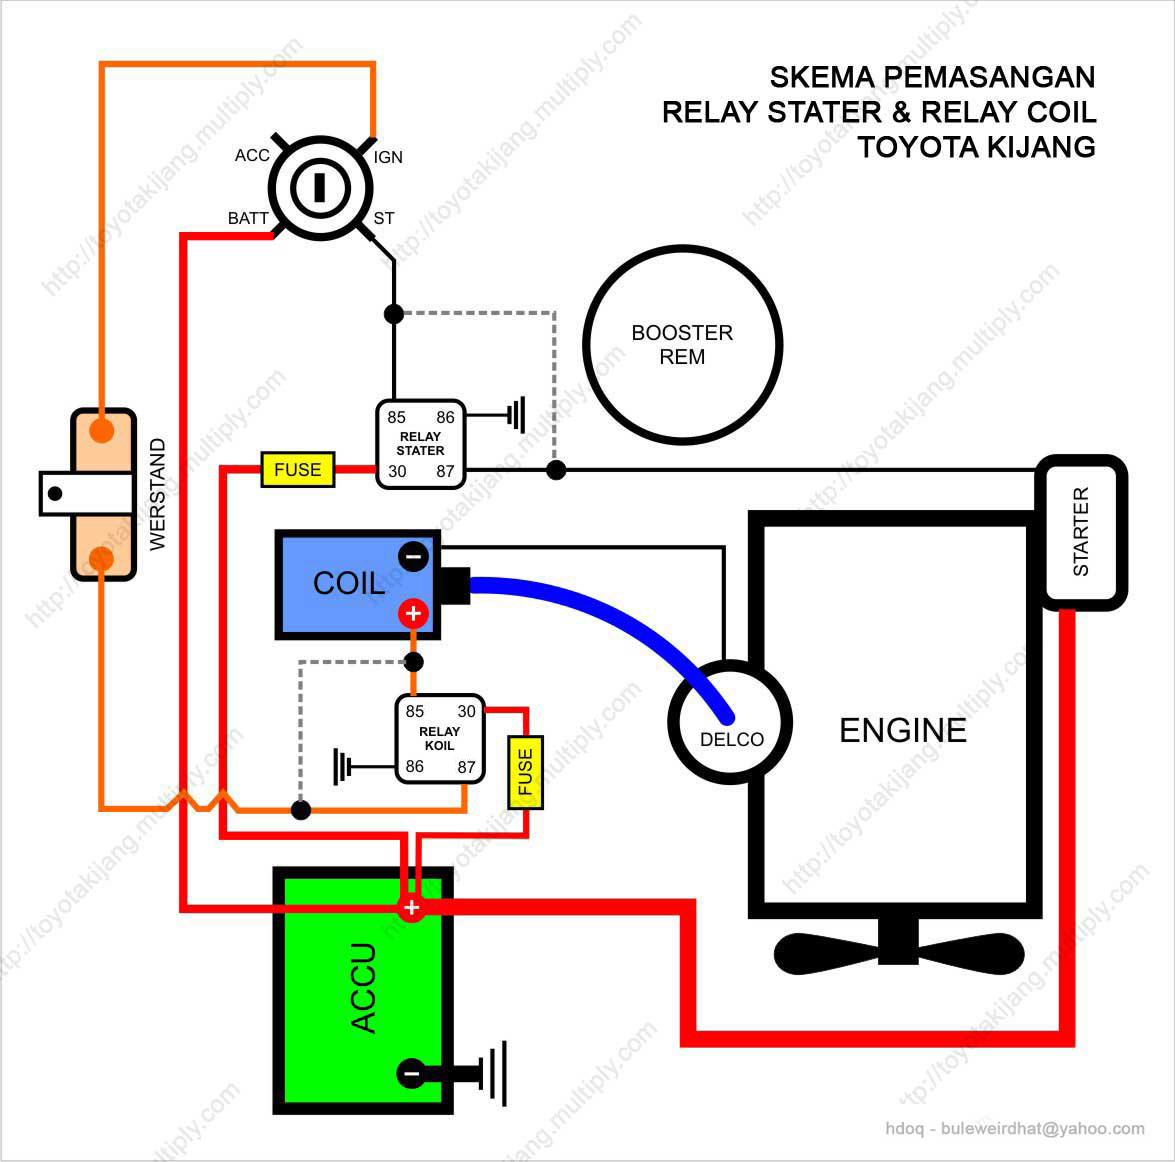 Toyota Kijang Cyber Community: Skema Relay Koil & Relay Stater